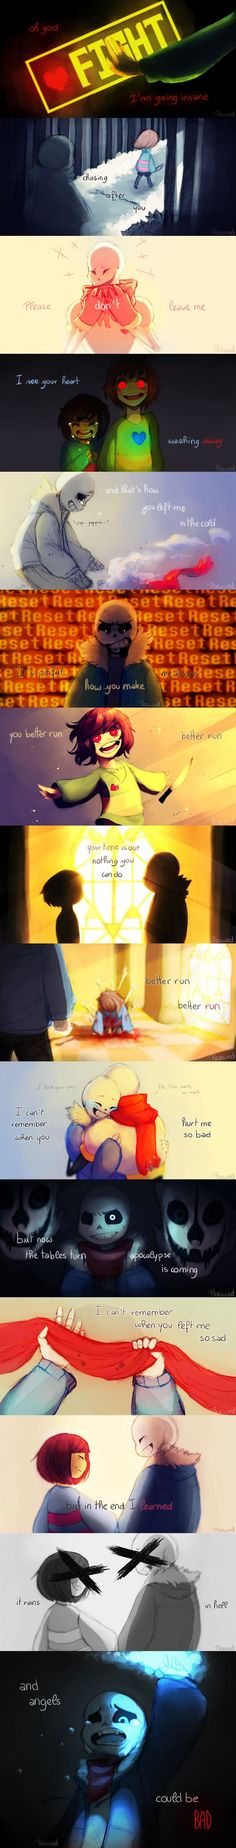 "[UNDERTALE MV] Angels by Peewed on DeviantArt>>>The song used is ""Angels can be bad"" by vicetone Undertale Memes, Undertale Fanart, Undertale Comic, Undertale Theories, Undertale Drawings, Chara, Que Horror, Boys Anime, Toby Fox"